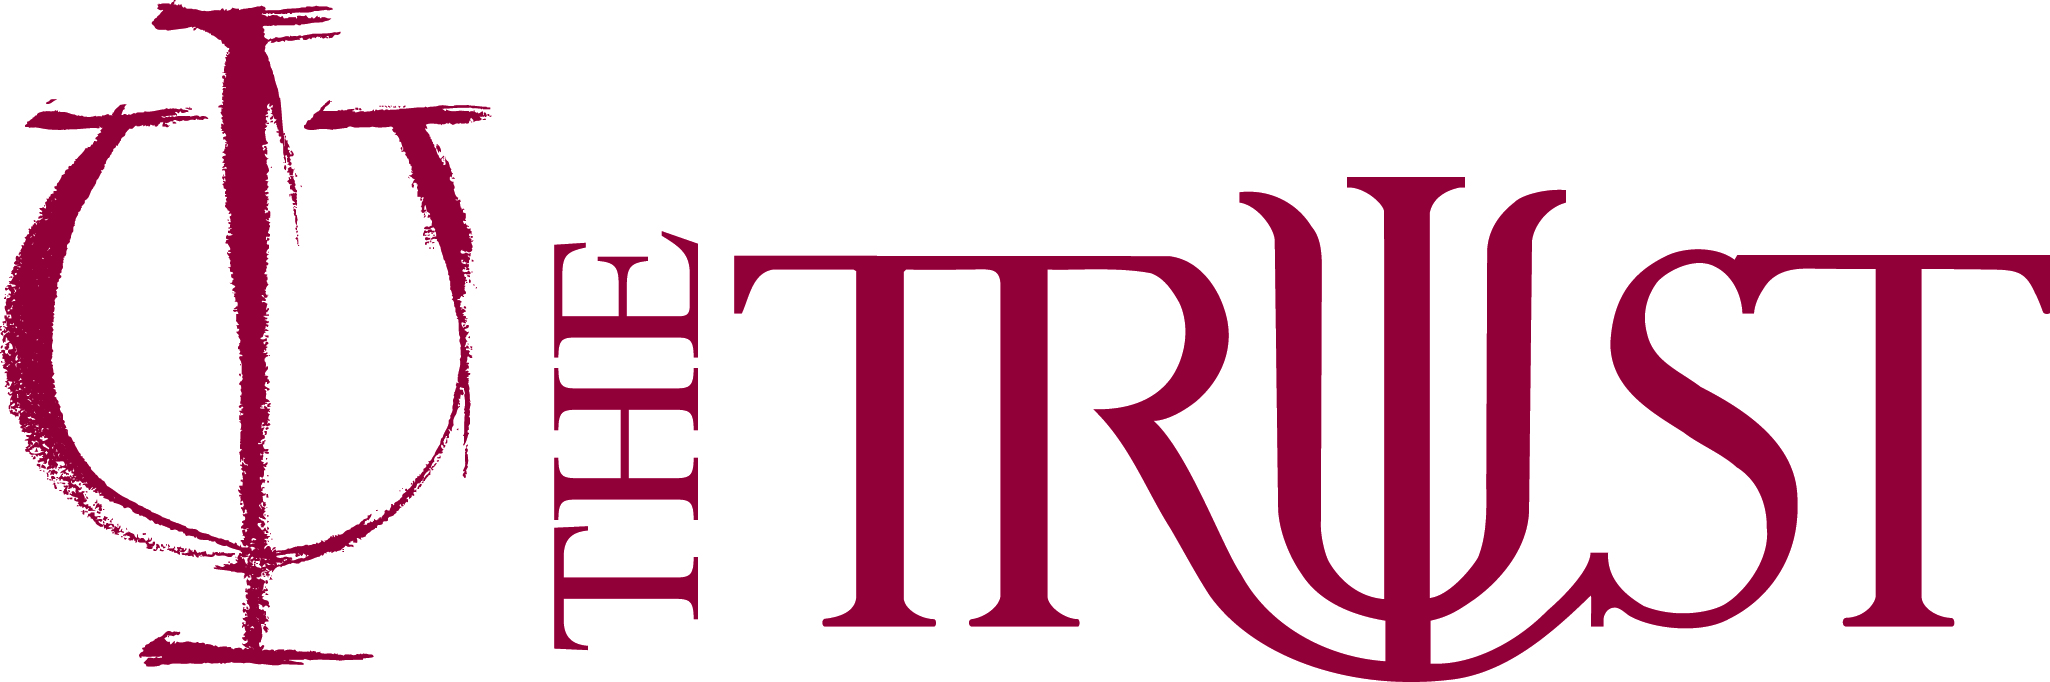 """The Trust is a leading provider of insurance, financial security, and risk management programs. Our products are created by psychologists, so we're able to meet the evolving needs of the profession in ways that other companies cannot. Plus, we cover your entire life, not just your career -- it's what we call the """"Total Package."""" Visit    www.trustinsurance.com    or call (800) 477-1200 for details."""